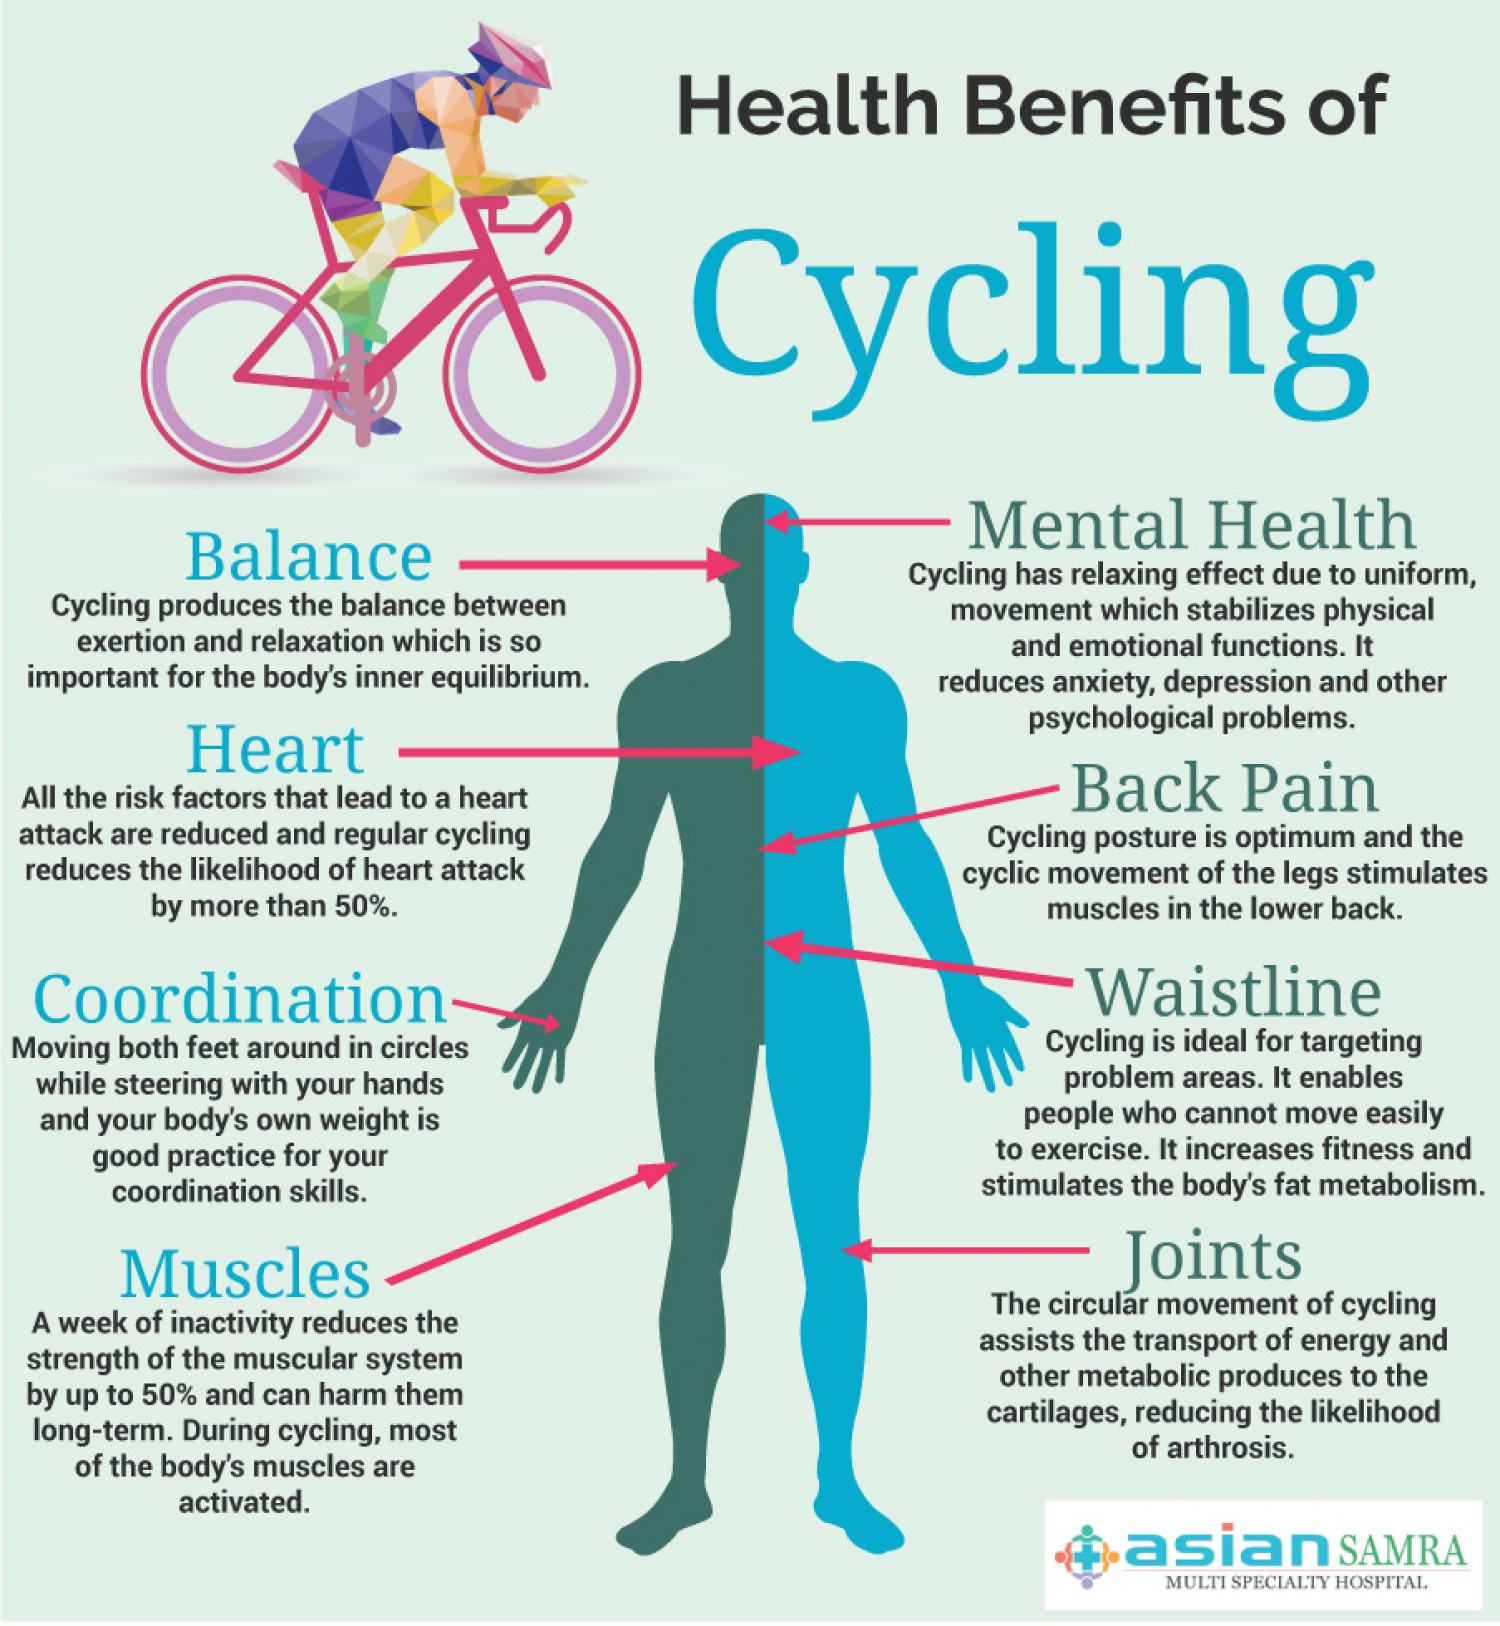 health-benefits-of-cycling_55d5c57fd8a1b_w1500.jpg